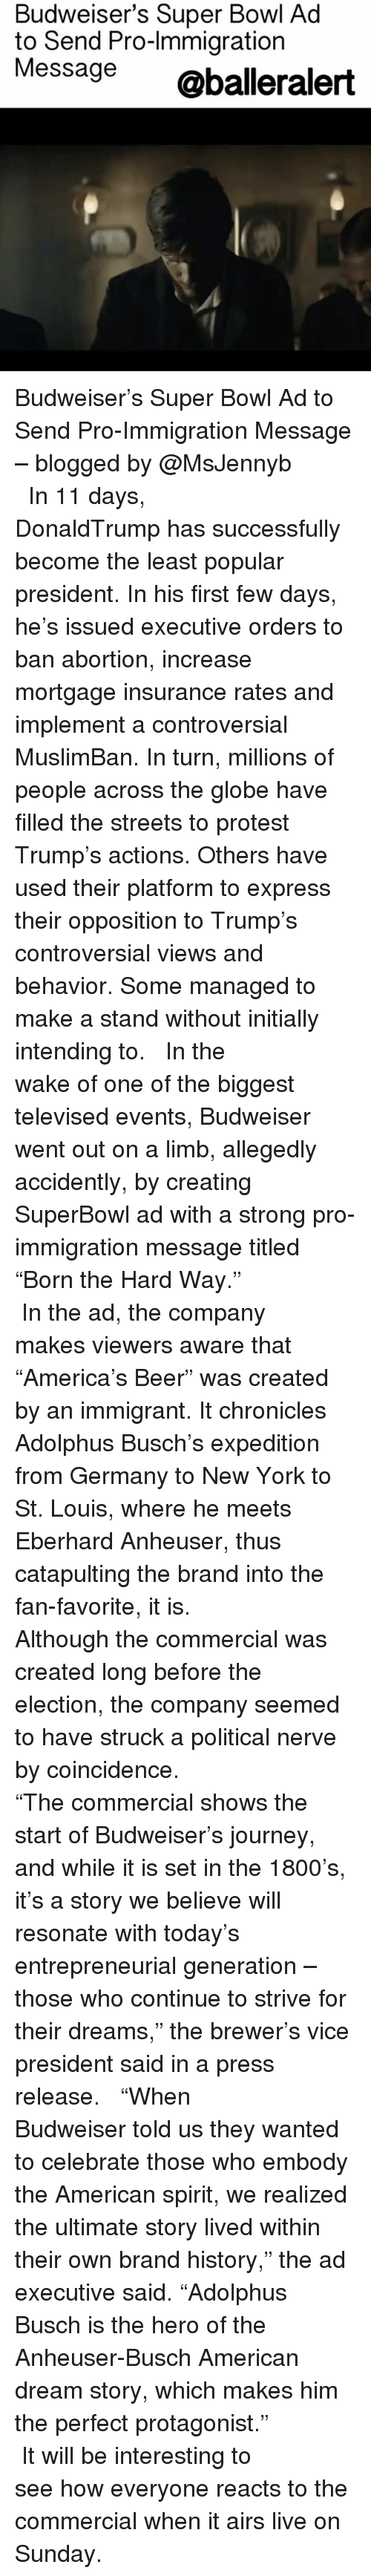 "Memes, American Dream, and 🤖: Budweiser's Super Bowl Ad  to Send Pro-lmmigration  Message  @balleralert Budweiser's Super Bowl Ad to Send Pro-Immigration Message – blogged by @MsJennyb ⠀⠀⠀⠀⠀⠀⠀⠀⠀ ⠀⠀⠀⠀⠀⠀⠀⠀⠀ In 11 days, DonaldTrump has successfully become the least popular president. In his first few days, he's issued executive orders to ban abortion, increase mortgage insurance rates and implement a controversial MuslimBan. In turn, millions of people across the globe have filled the streets to protest Trump's actions. Others have used their platform to express their opposition to Trump's controversial views and behavior. Some managed to make a stand without initially intending to. ⠀⠀⠀⠀⠀⠀⠀⠀⠀ ⠀⠀⠀⠀⠀⠀⠀⠀⠀ In the wake of one of the biggest televised events, Budweiser went out on a limb, allegedly accidently, by creating SuperBowl ad with a strong pro-immigration message titled ""Born the Hard Way."" ⠀⠀⠀⠀⠀⠀⠀⠀⠀ ⠀⠀⠀⠀⠀⠀⠀⠀⠀ In the ad, the company makes viewers aware that ""America's Beer"" was created by an immigrant. It chronicles Adolphus Busch's expedition from Germany to New York to St. Louis, where he meets Eberhard Anheuser, thus catapulting the brand into the fan-favorite, it is. ⠀⠀⠀⠀⠀⠀⠀⠀⠀ ⠀⠀⠀⠀⠀⠀⠀⠀⠀ Although the commercial was created long before the election, the company seemed to have struck a political nerve by coincidence. ⠀⠀⠀⠀⠀⠀⠀⠀⠀ ⠀⠀⠀⠀⠀⠀⠀⠀⠀ ""The commercial shows the start of Budweiser's journey, and while it is set in the 1800's, it's a story we believe will resonate with today's entrepreneurial generation – those who continue to strive for their dreams,"" the brewer's vice president said in a press release. ⠀⠀⠀⠀⠀⠀⠀⠀⠀ ⠀⠀⠀⠀⠀⠀⠀⠀⠀ ""When Budweiser told us they wanted to celebrate those who embody the American spirit, we realized the ultimate story lived within their own brand history,"" the ad executive said. ""Adolphus Busch is the hero of the Anheuser-Busch American dream story, which makes him the perfect protagonist."" ⠀⠀⠀⠀⠀⠀⠀⠀⠀ ⠀⠀⠀⠀⠀⠀⠀⠀⠀ It will be interesting to see how everyone reacts to the commercial when it airs live on Sunday."